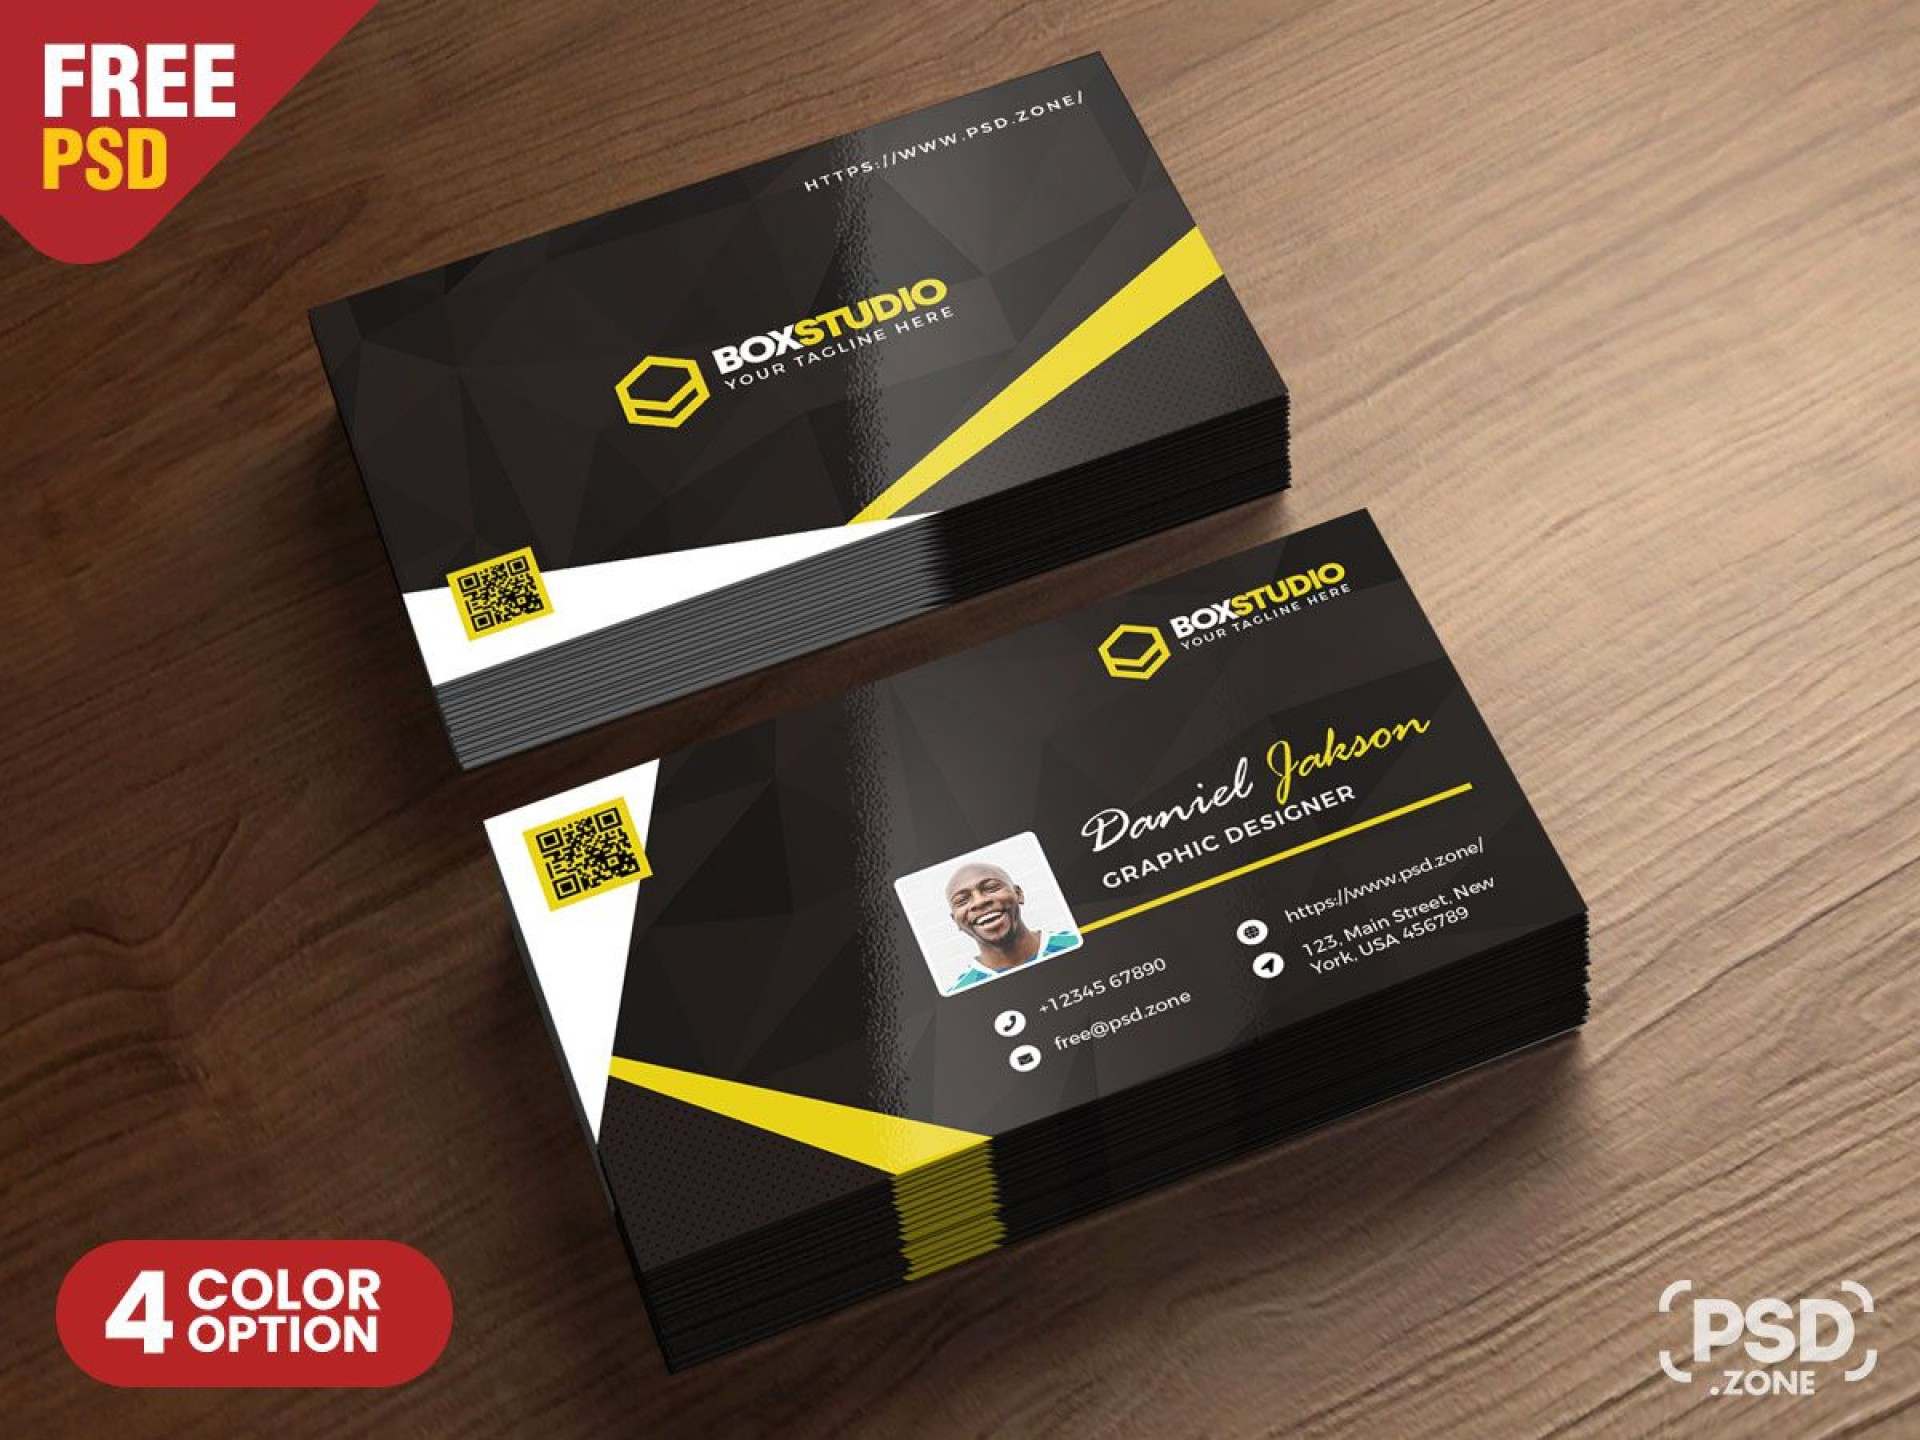 006 Simple Busines Card Template Psd Inspiration  Professional Photographer Freebie Visiting File Free Download1920